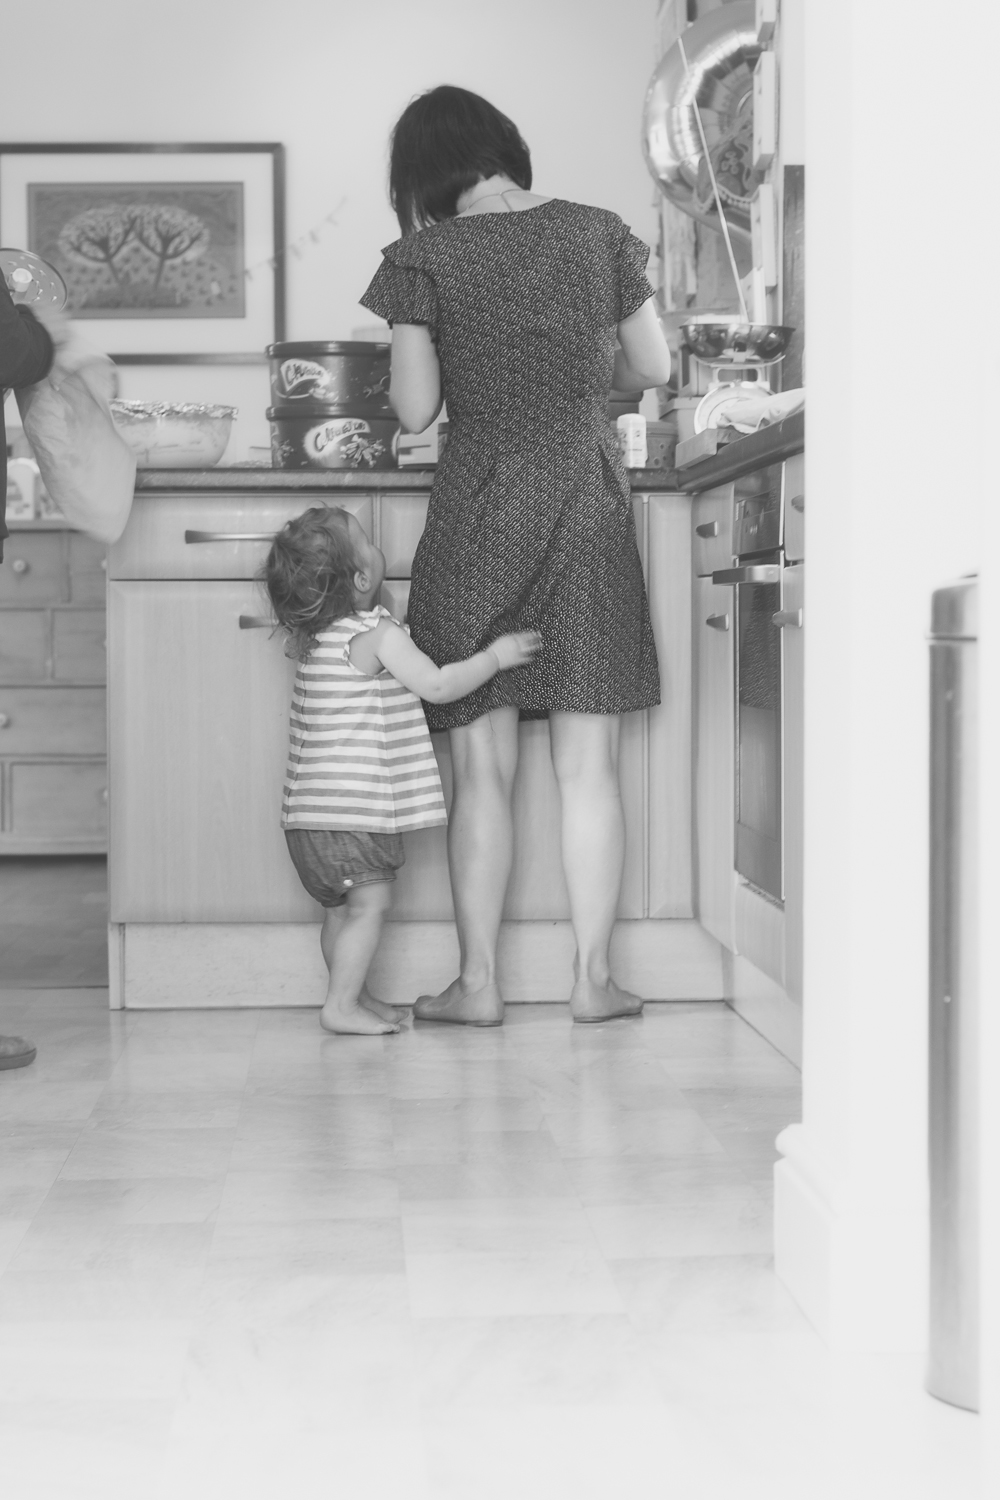 A little girl hugs her mummy's legs in the kitchen, as her mum prepares party food